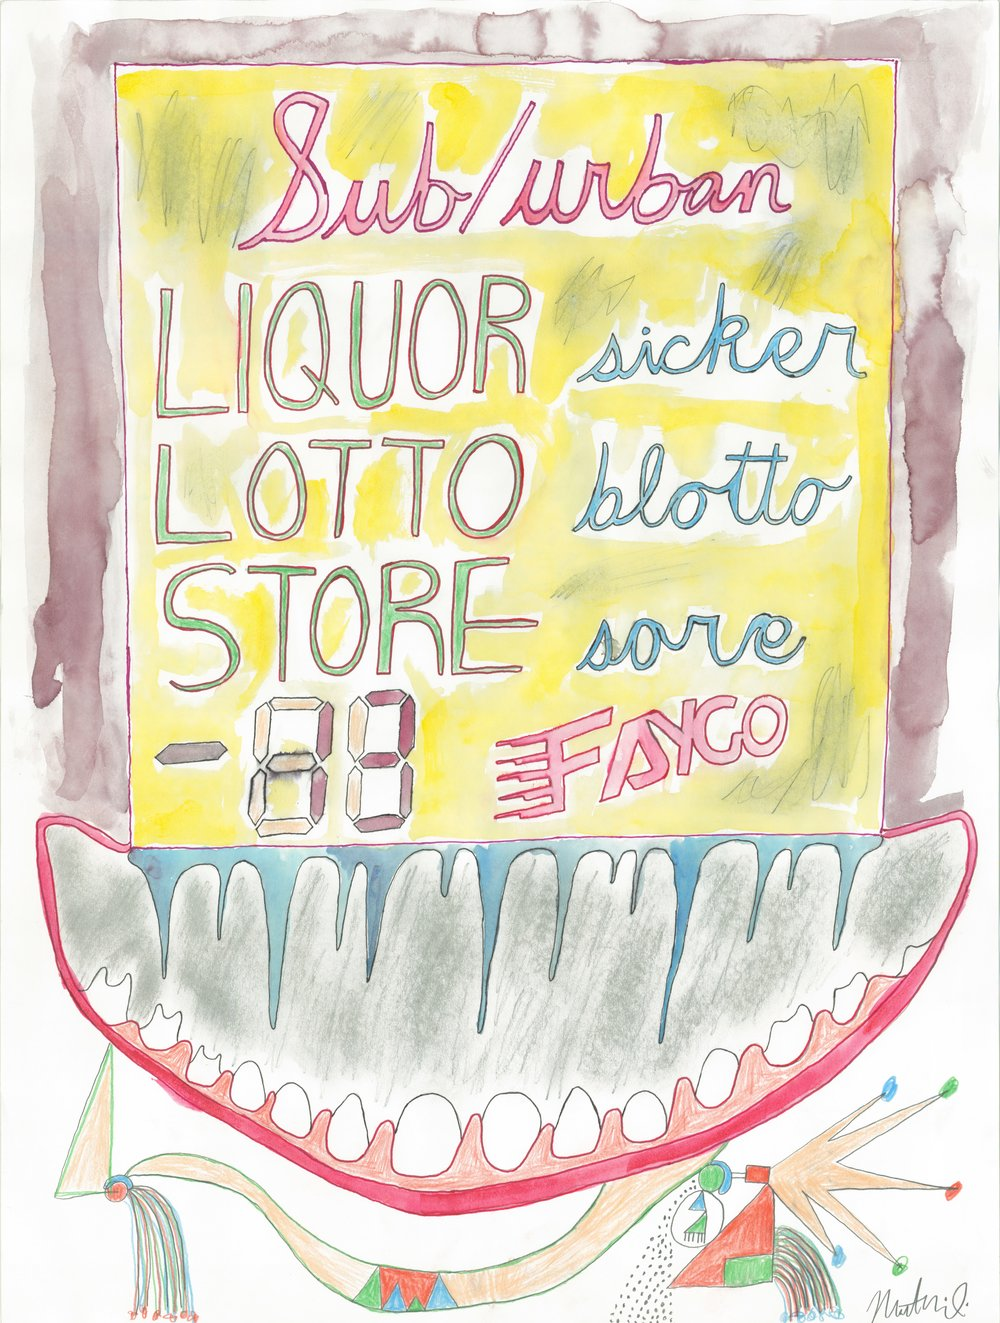 liquor lotto store sore copy.jpg